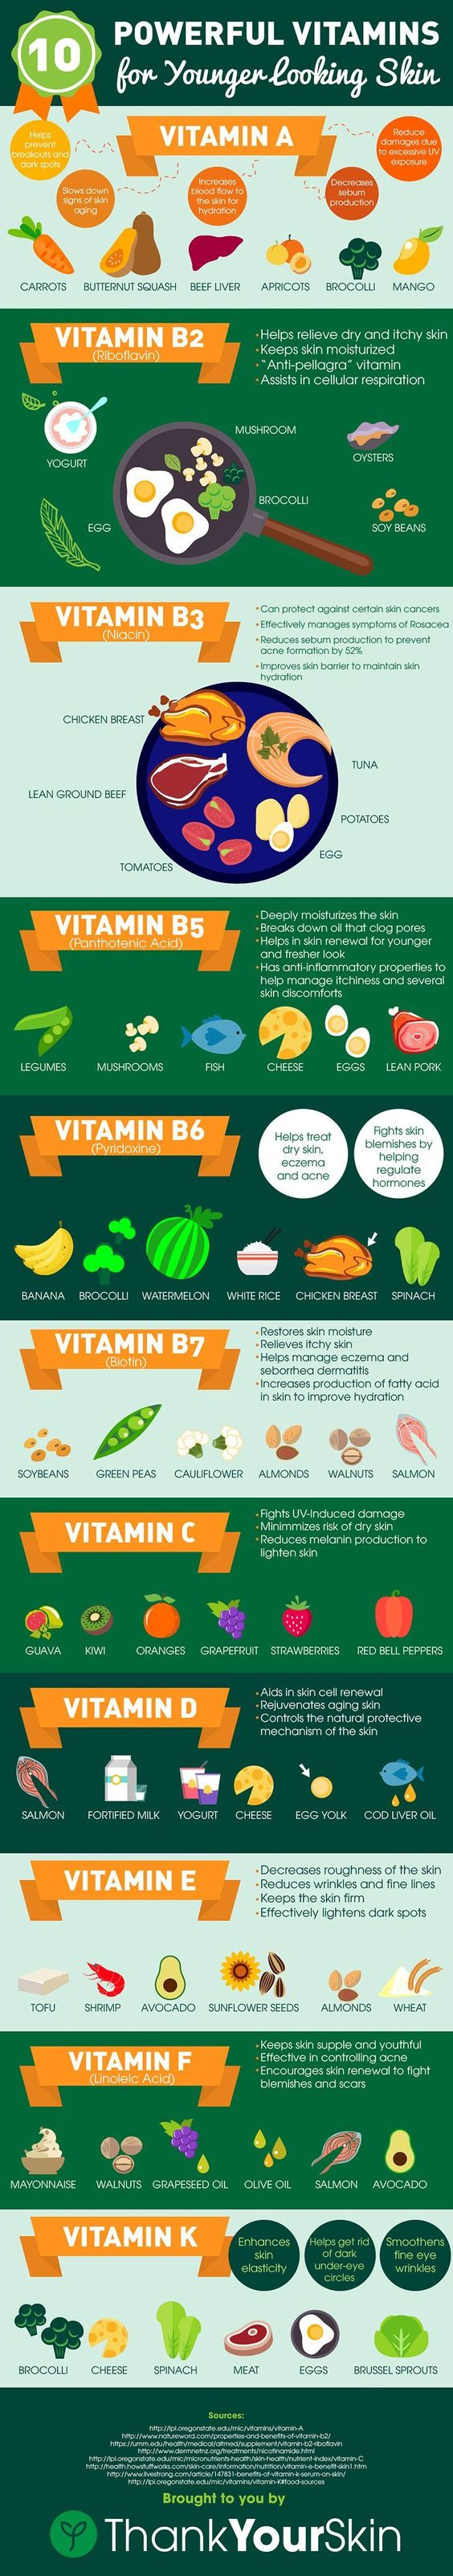 powerful vitamins for younger looking skin